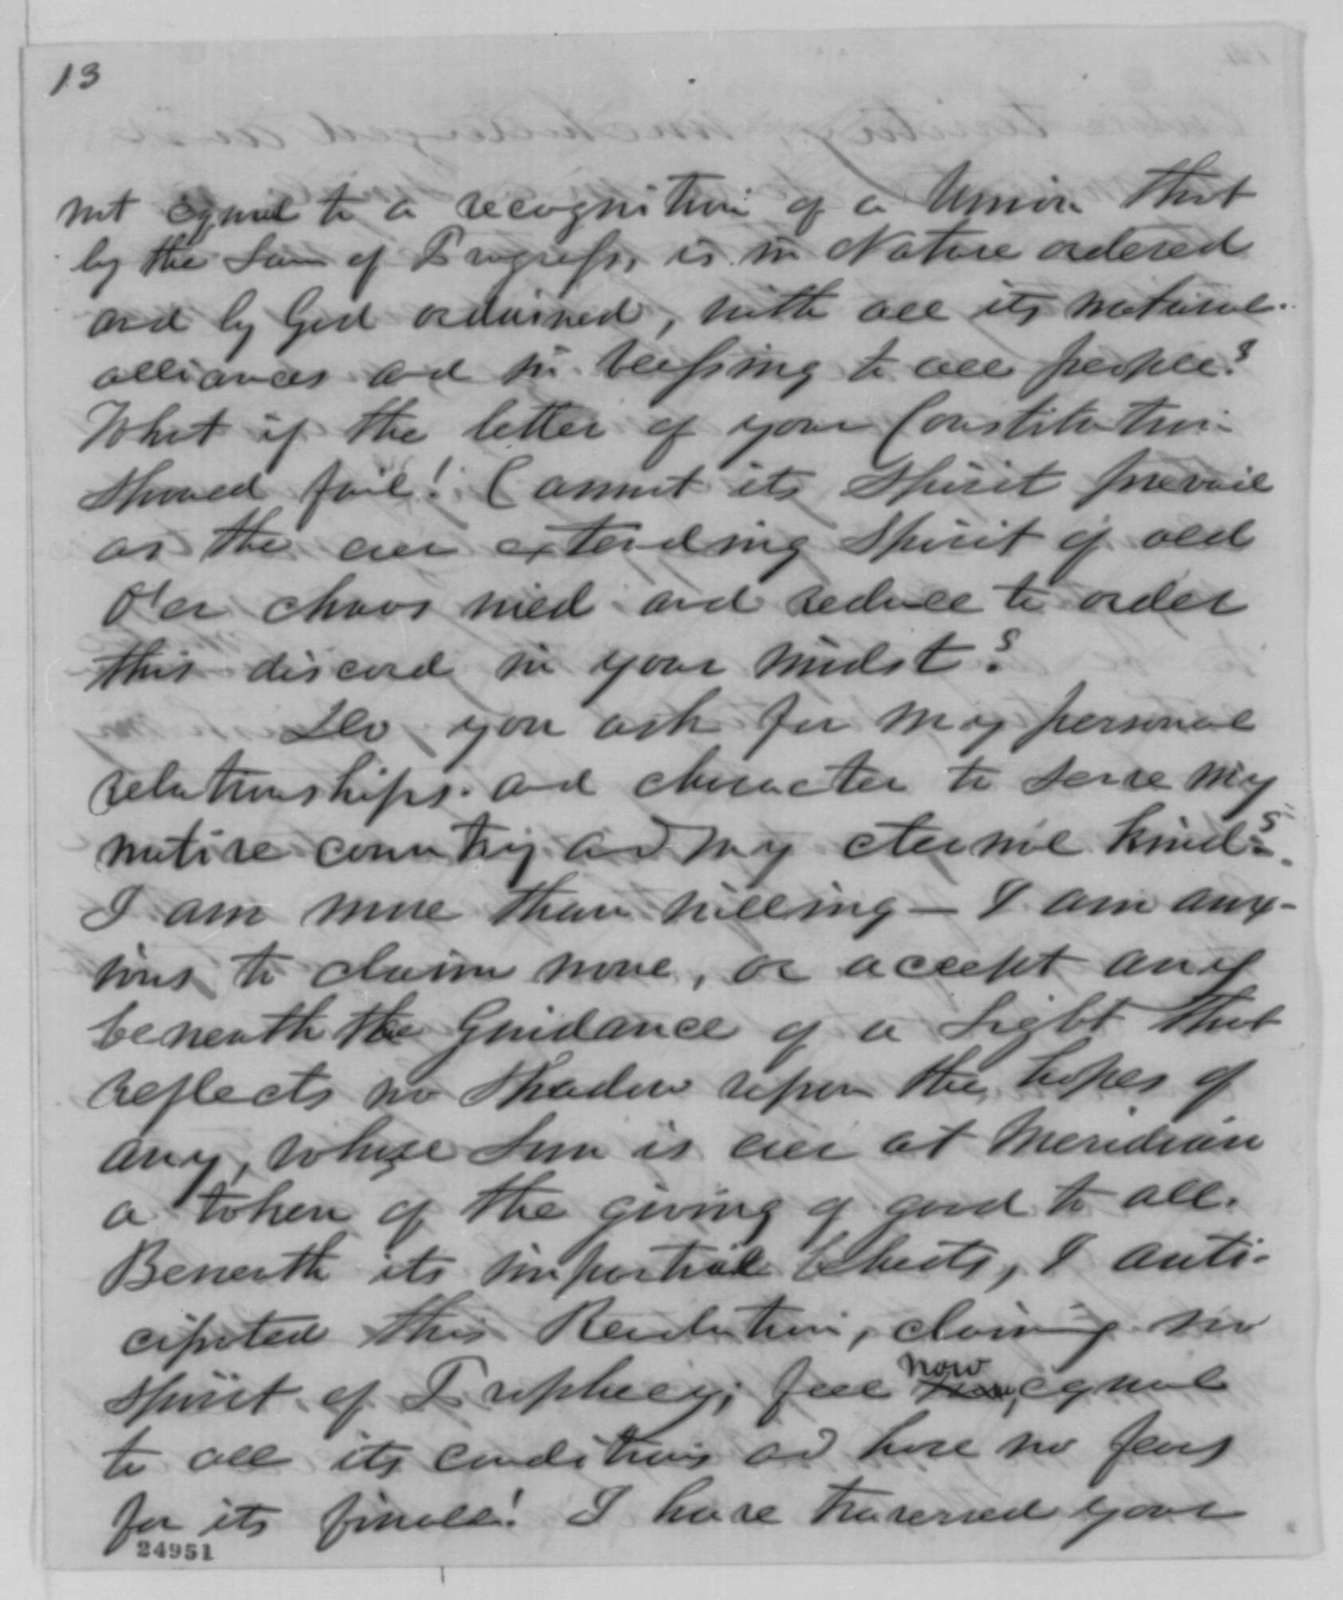 J. B. Ferguson to Abraham Lincoln, Friday, July 17, 1863  (Seeks end to the war)